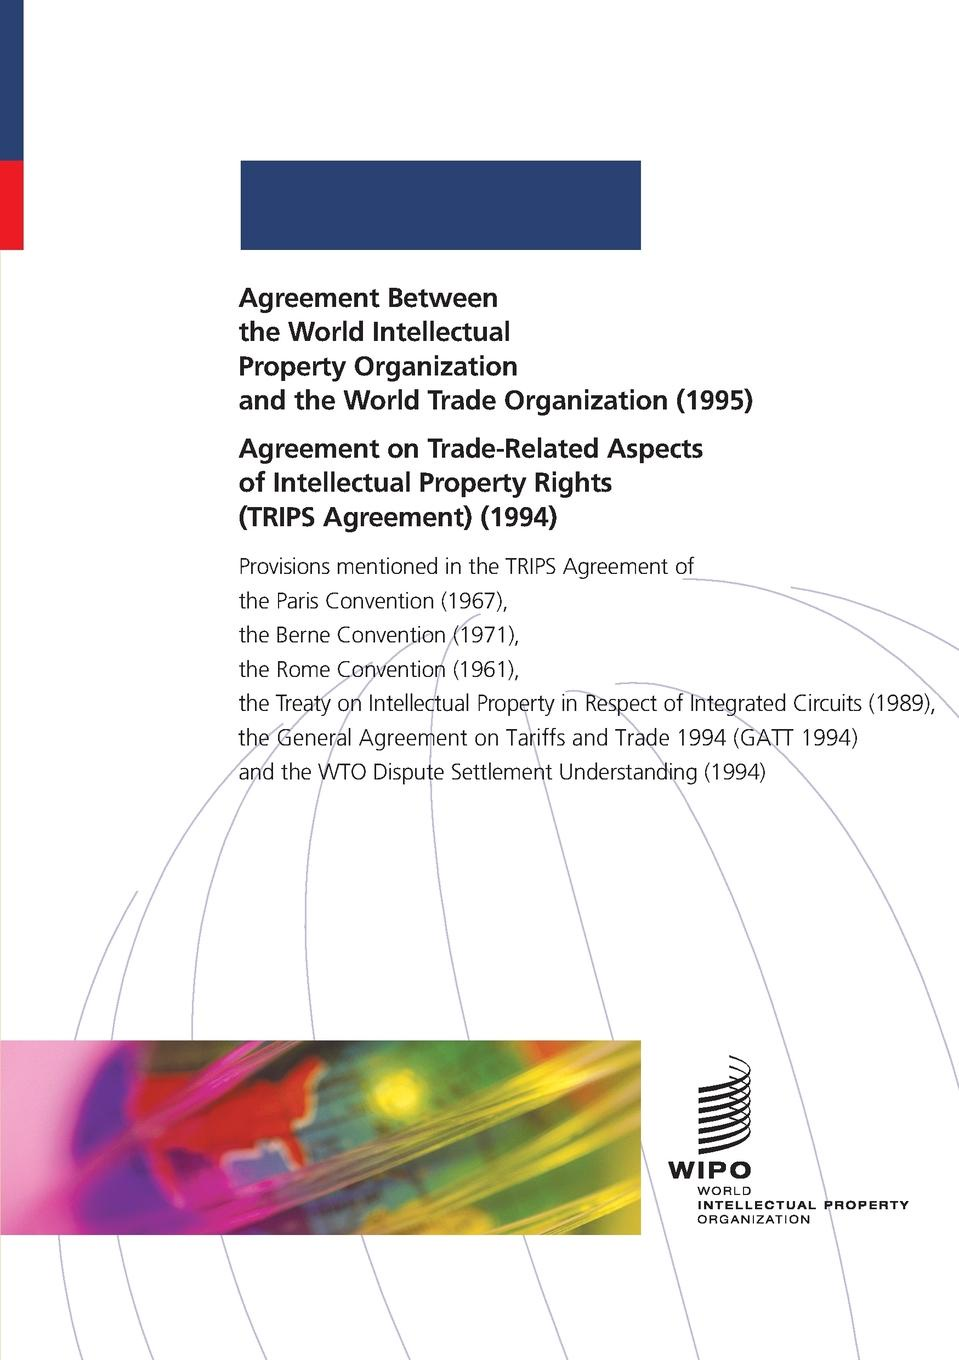 Agreement Between the World Intellectual Property Organization and the World Trade Organization (1995) and Agreement on Trade-Related Aspects of Intellectual Property Rights (TRIPS Agreement) (1994) isda master agreement